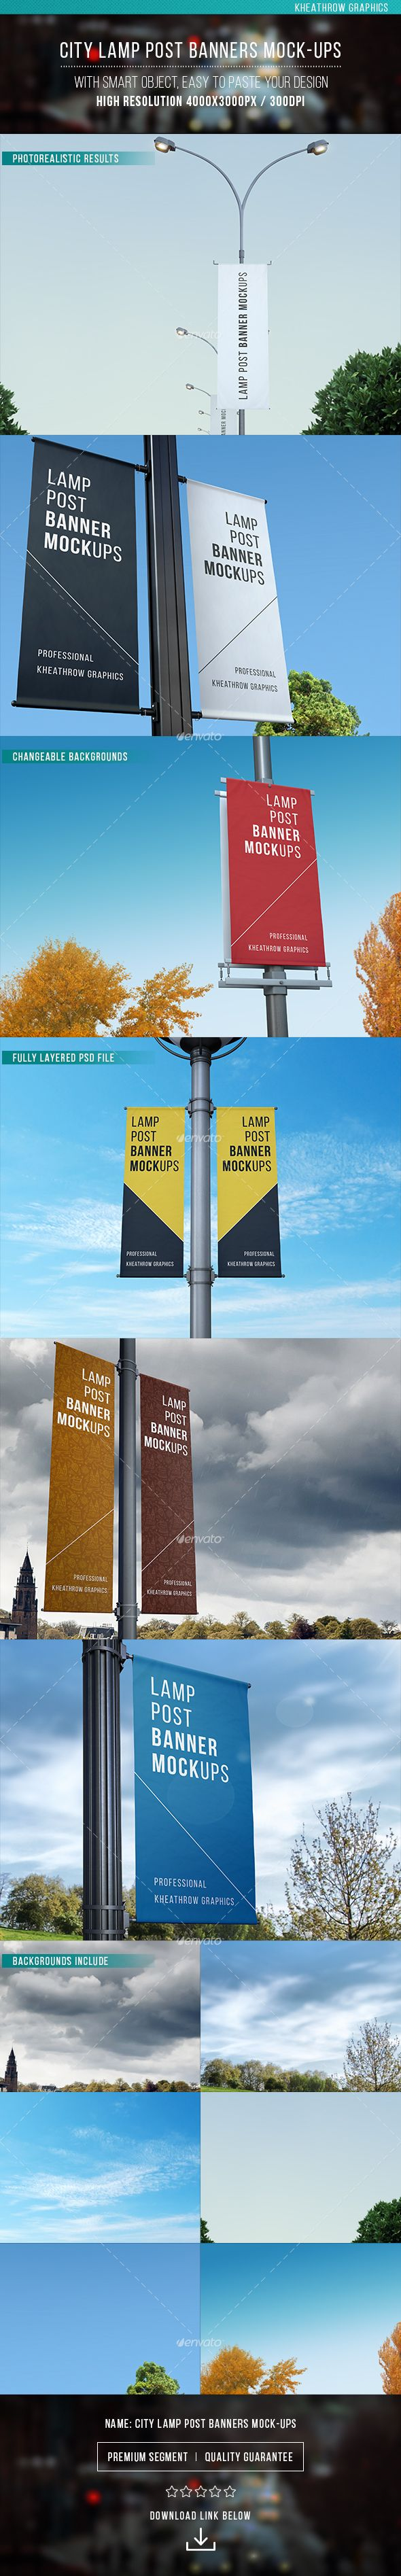 https://www.behance.net/gallery/29435377/City-Lamp-Post-Banners-Mock-ups